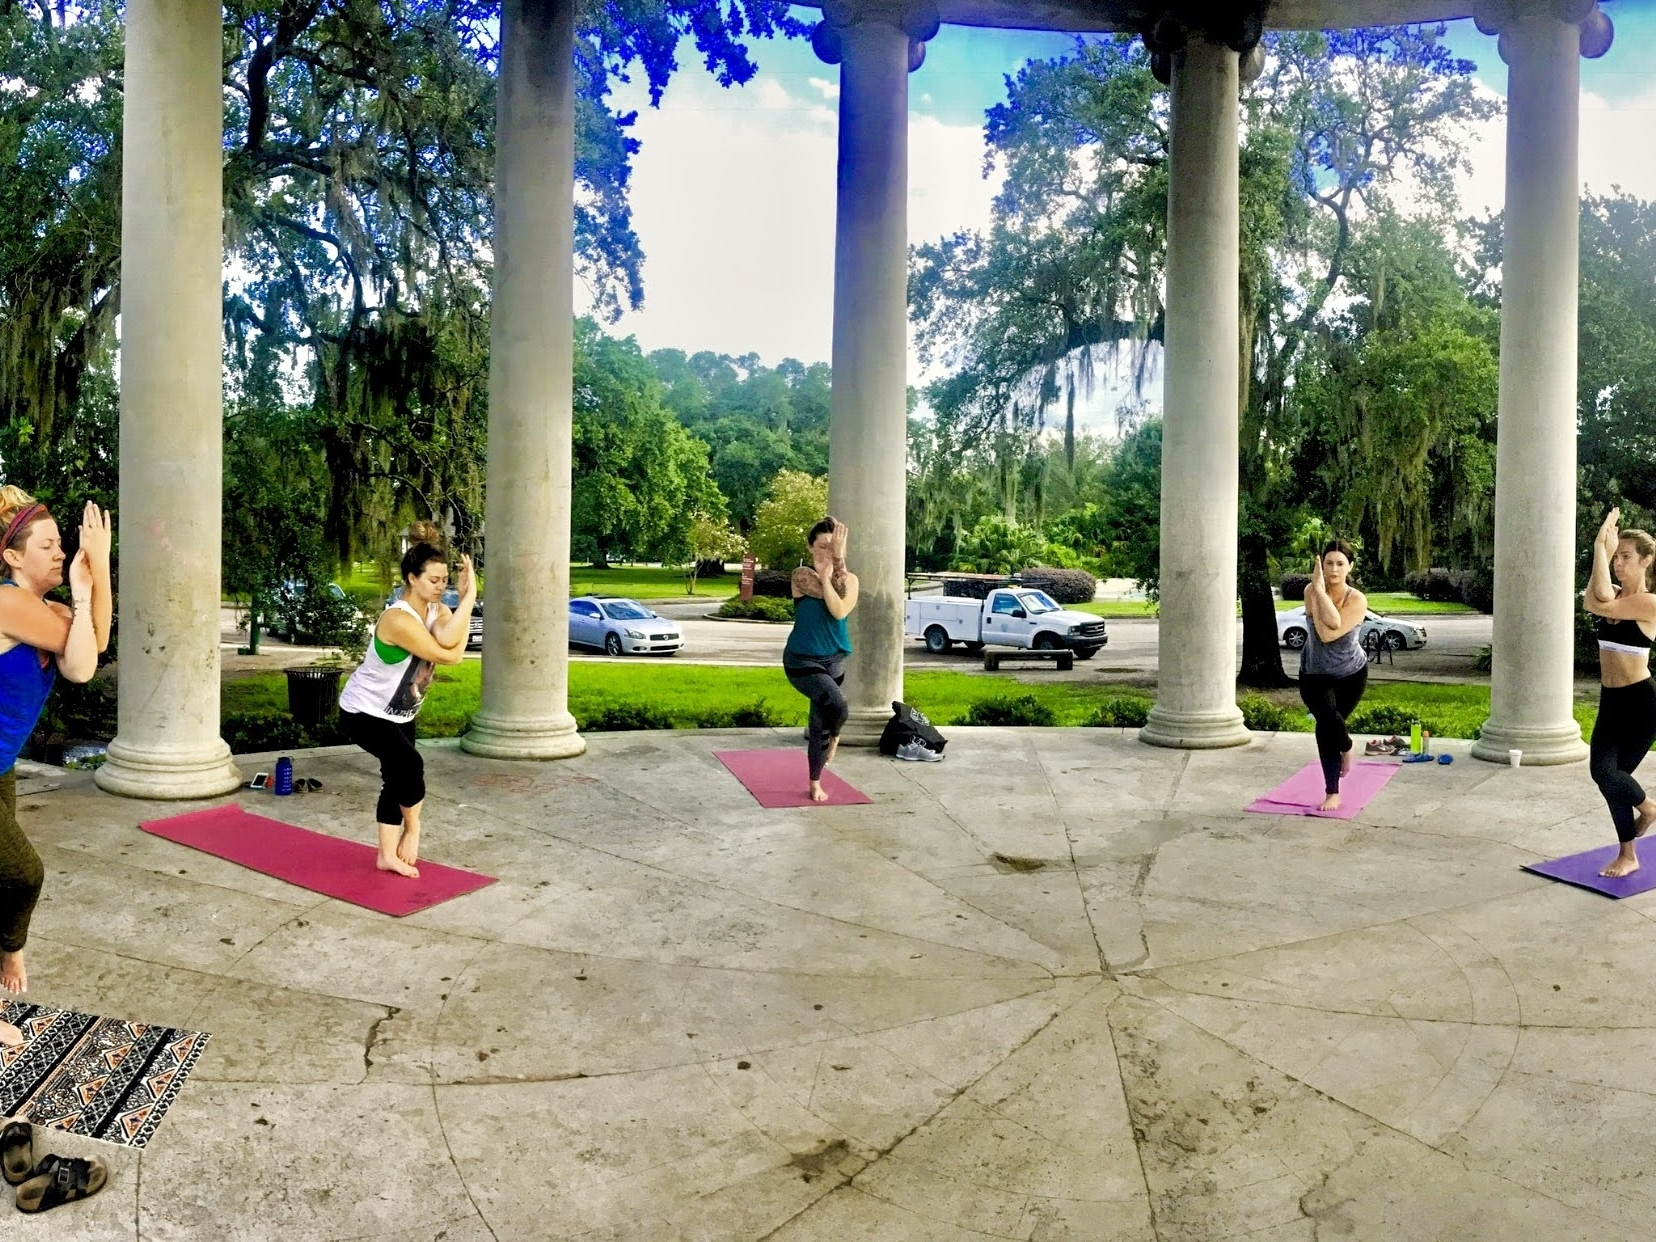 Wednesdays in City Park - Join us for sunrise yoga at the most beautiful park in the city, under the Peristyle. NTY will lead a 55-minute challenging, friendly, and fun, all-levels donation-based flow every Wednesday morning at 6:30AM underneath the Peristyle (42 Dreyfous Drive) in City Park!.Google Map: Here